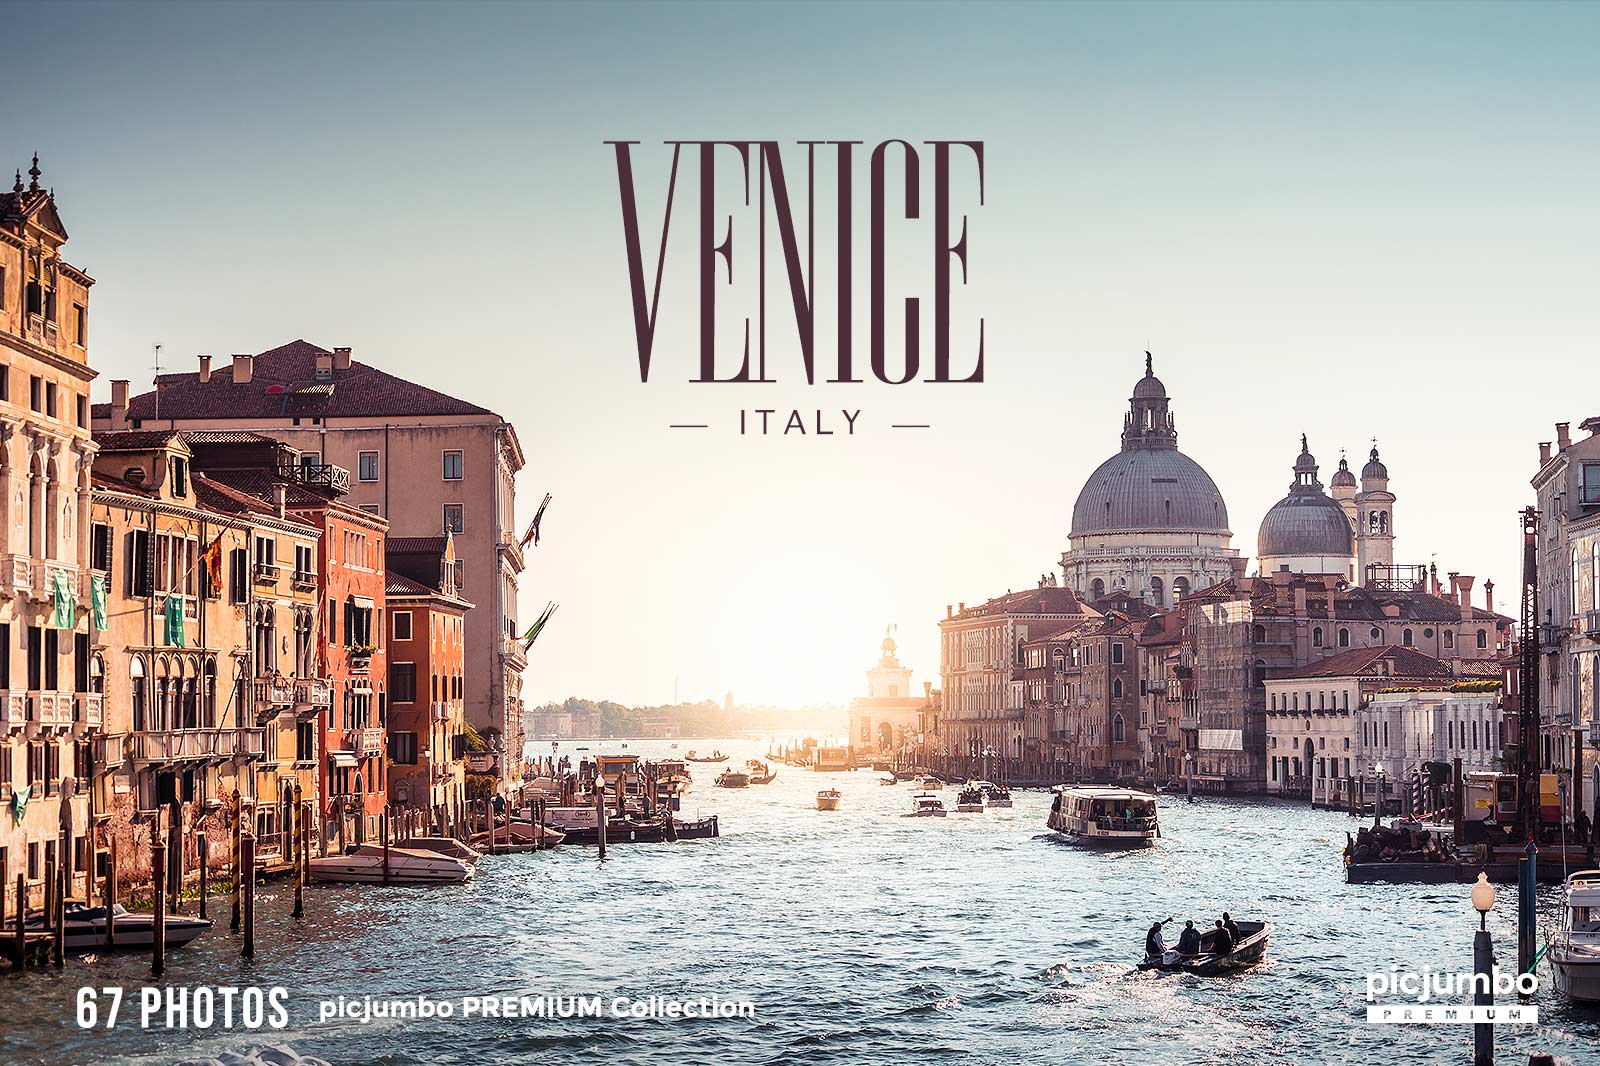 Venice, Italy — get it now in picjumbo PREMIUM!